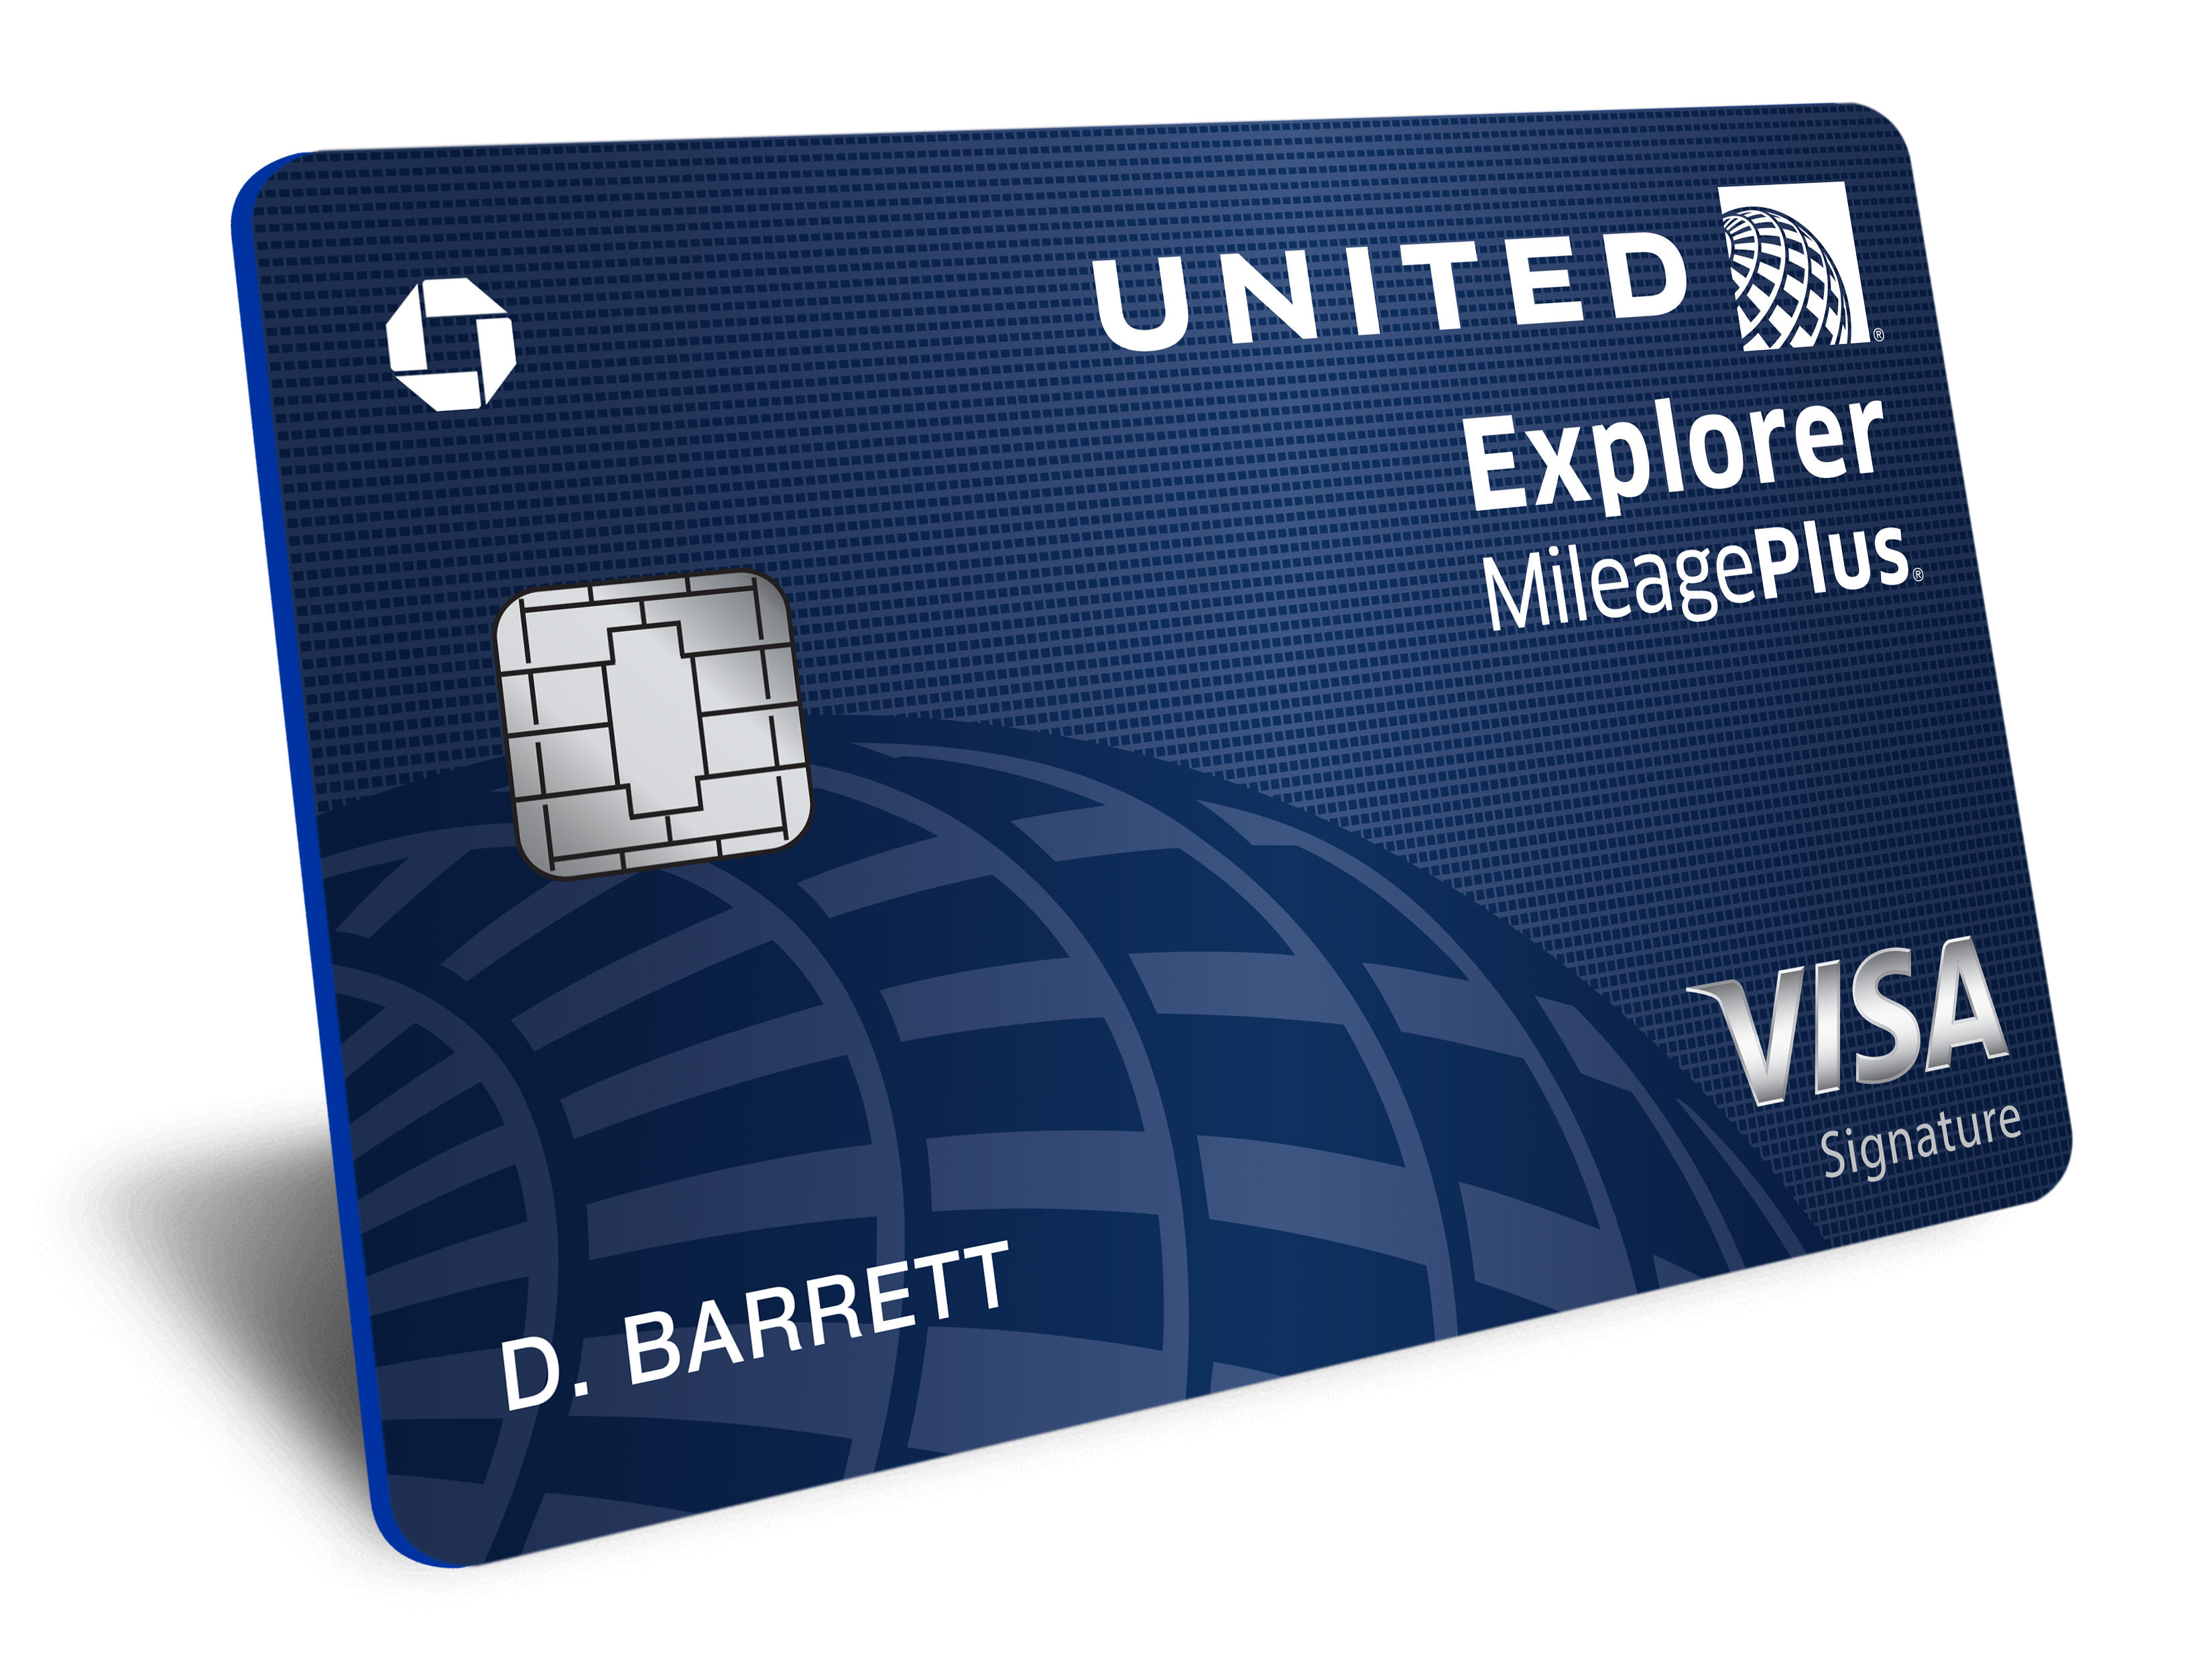 New united explorer card cardmembers are now rewarded in the air new united explorer card cardmembers are now rewarded in the air and on the ground business wire colourmoves